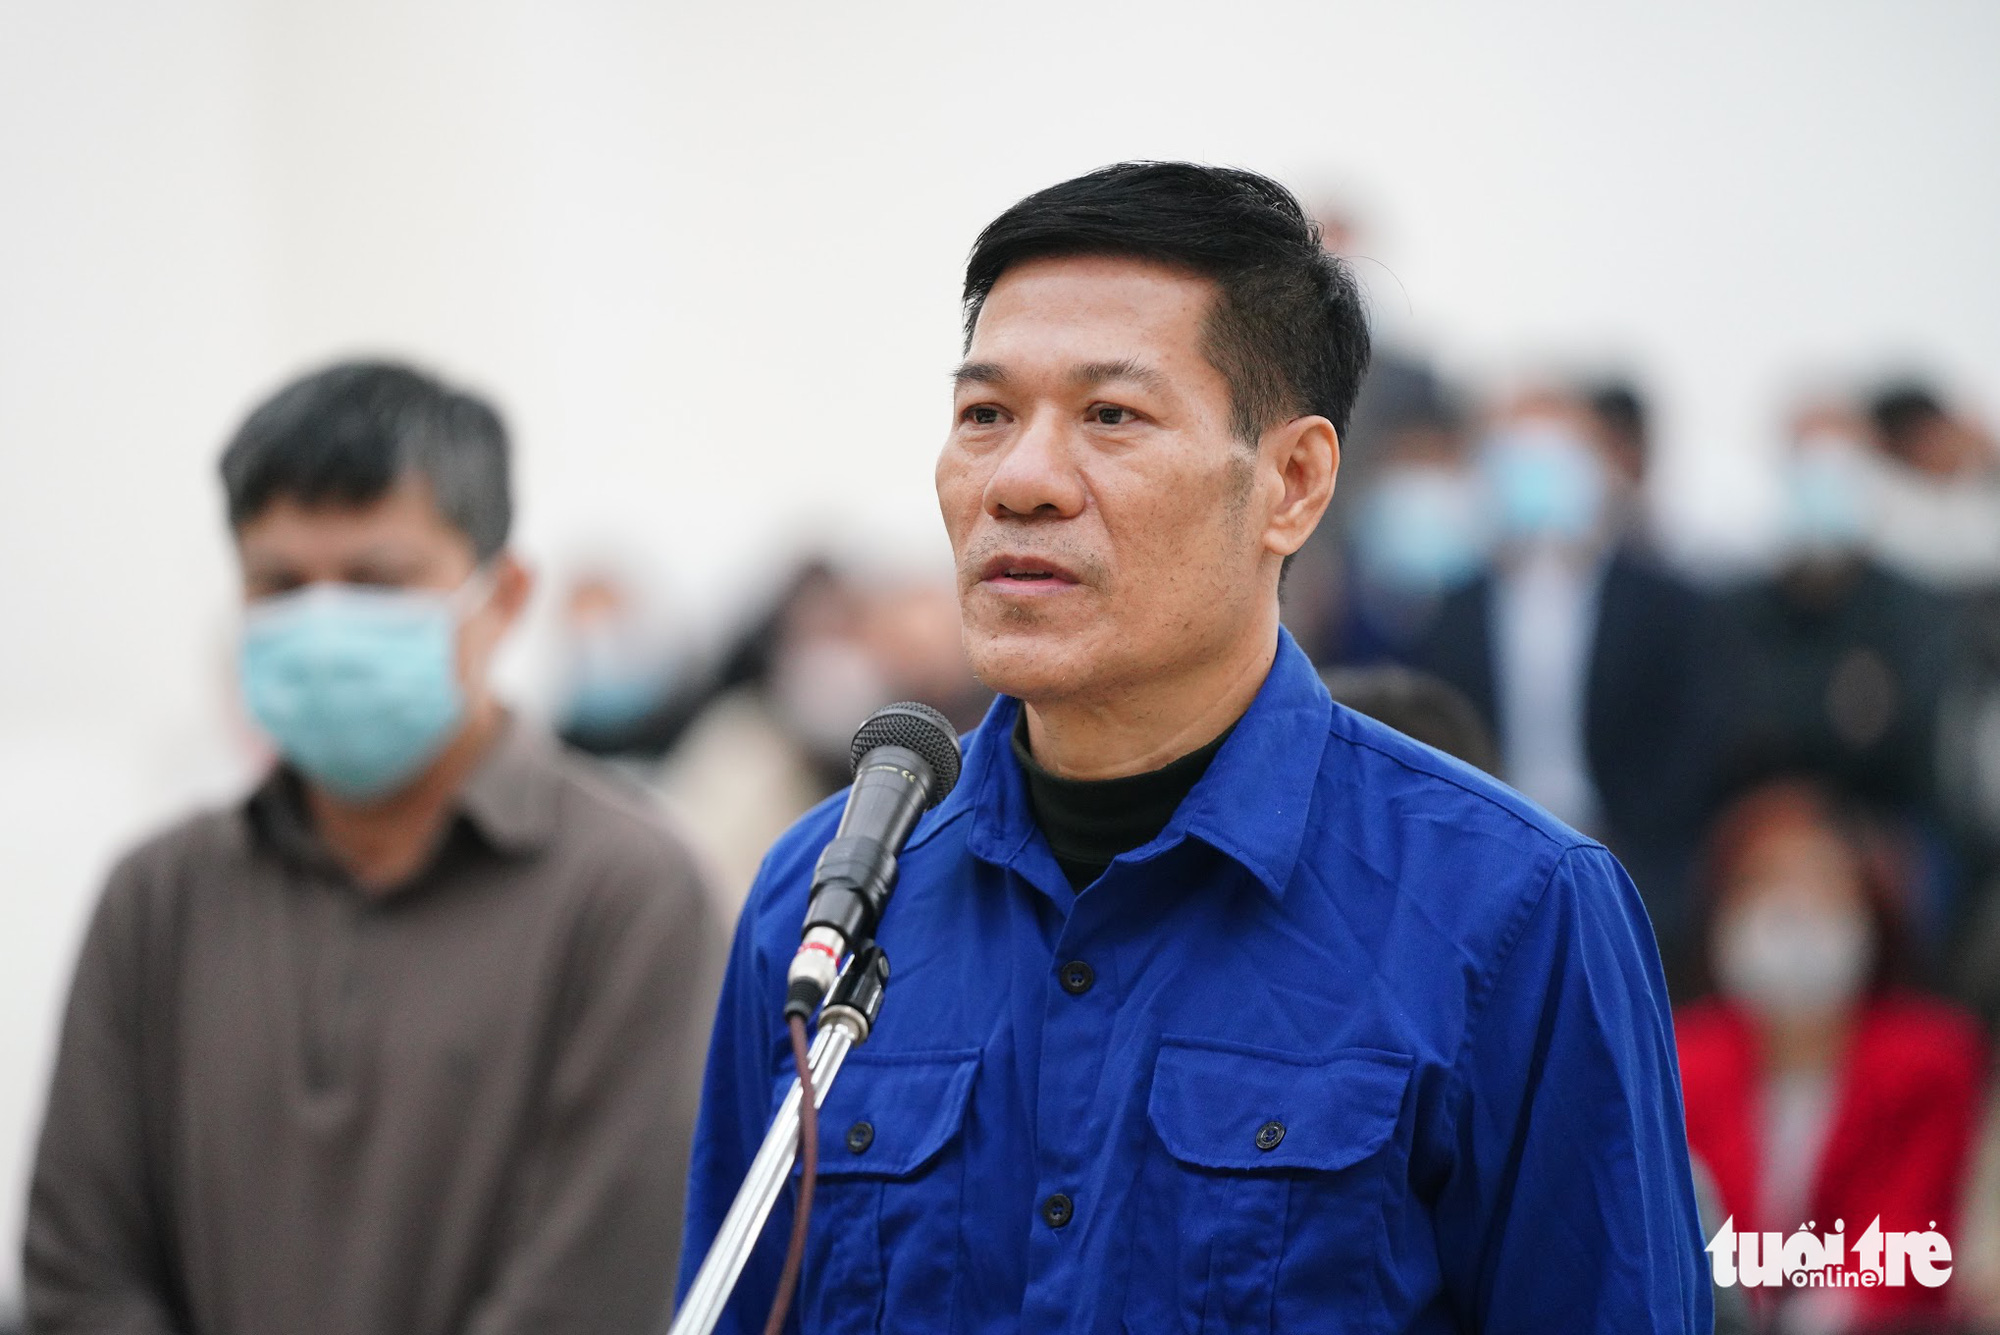 Hanoi CDC director jailed for 10 years over wrongdoing in COVID-19 equipment bidding